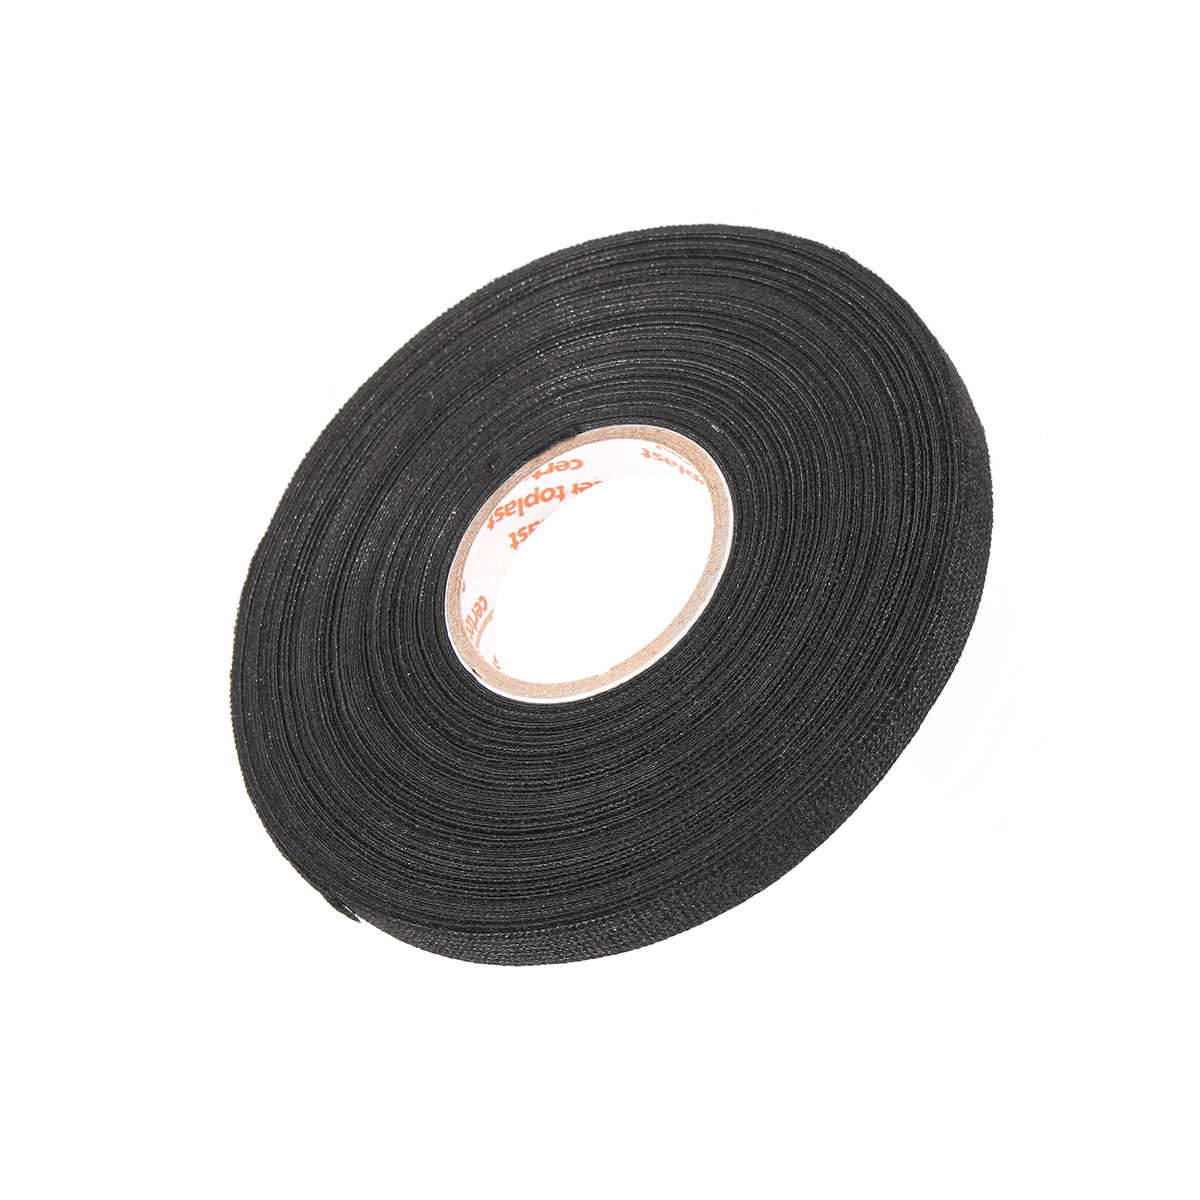 1 Roll 15m For Car Auto Adhesive Cloth Tape Cable Looms Wiring Harness Wrap